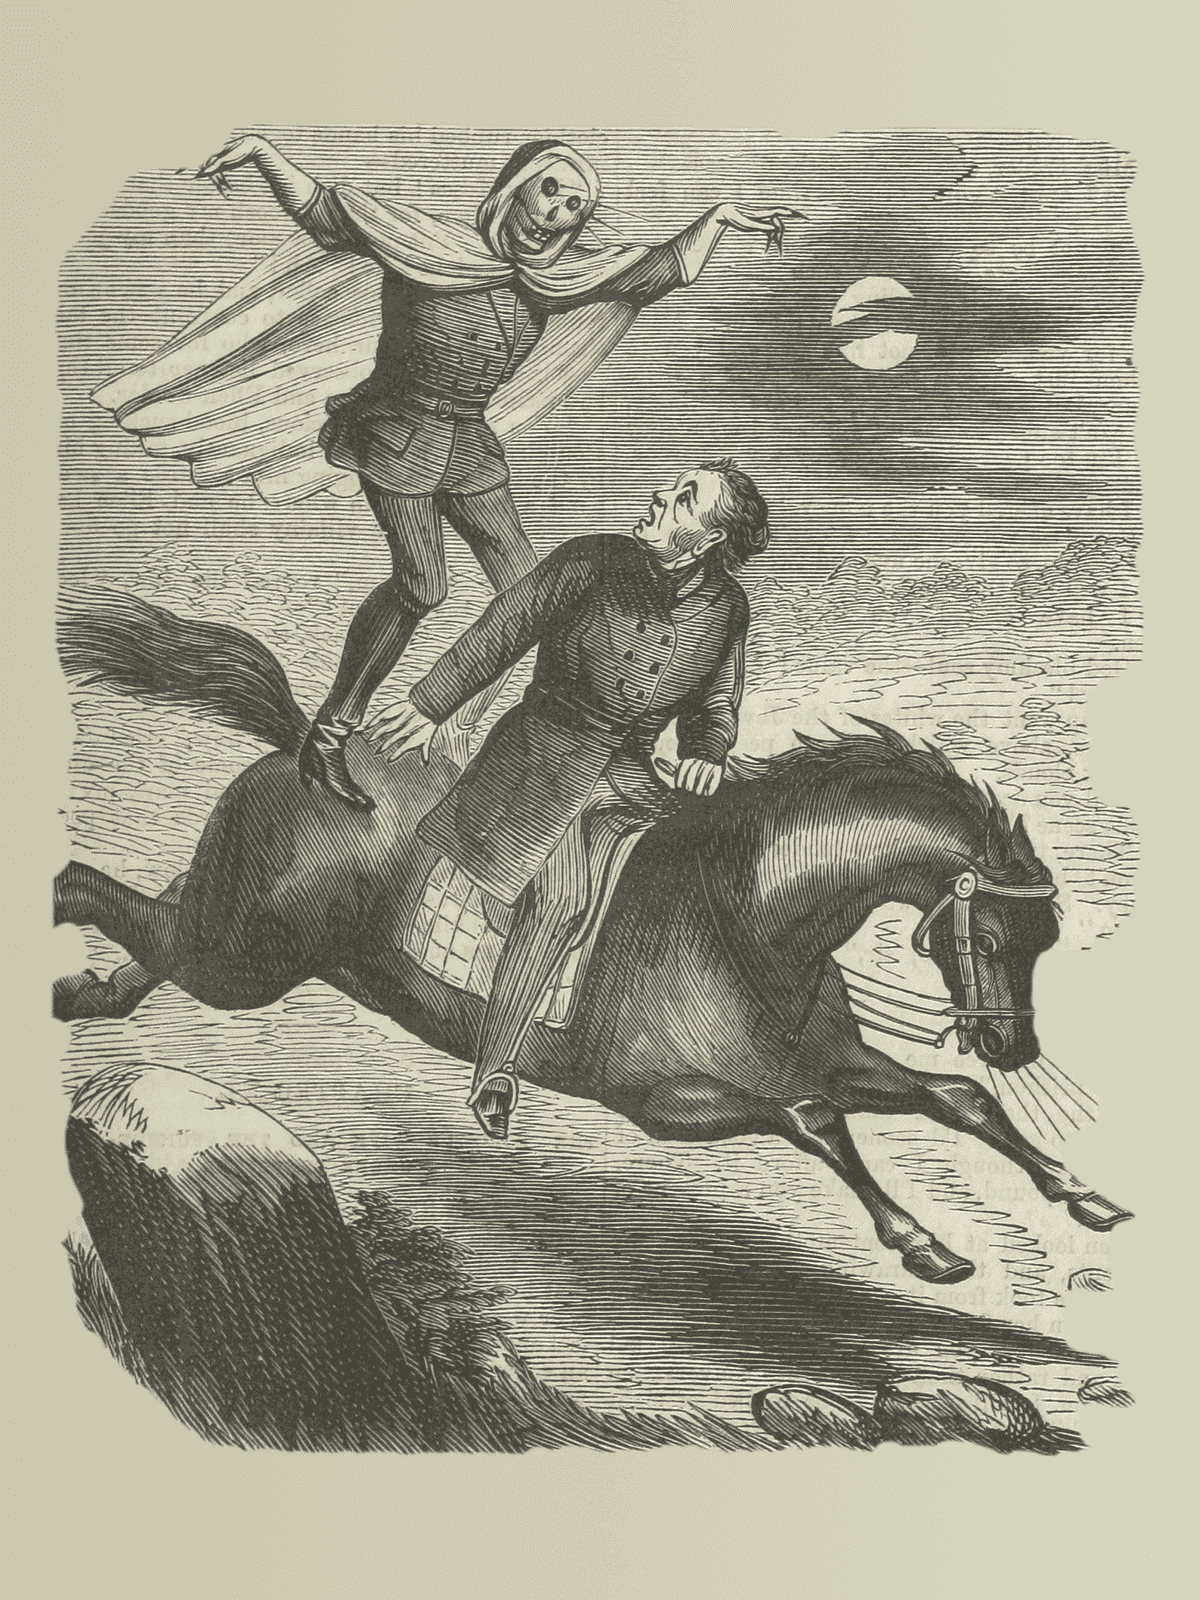 A typical Spring Heeled Jack attack as depicted in the penny dreadfuls